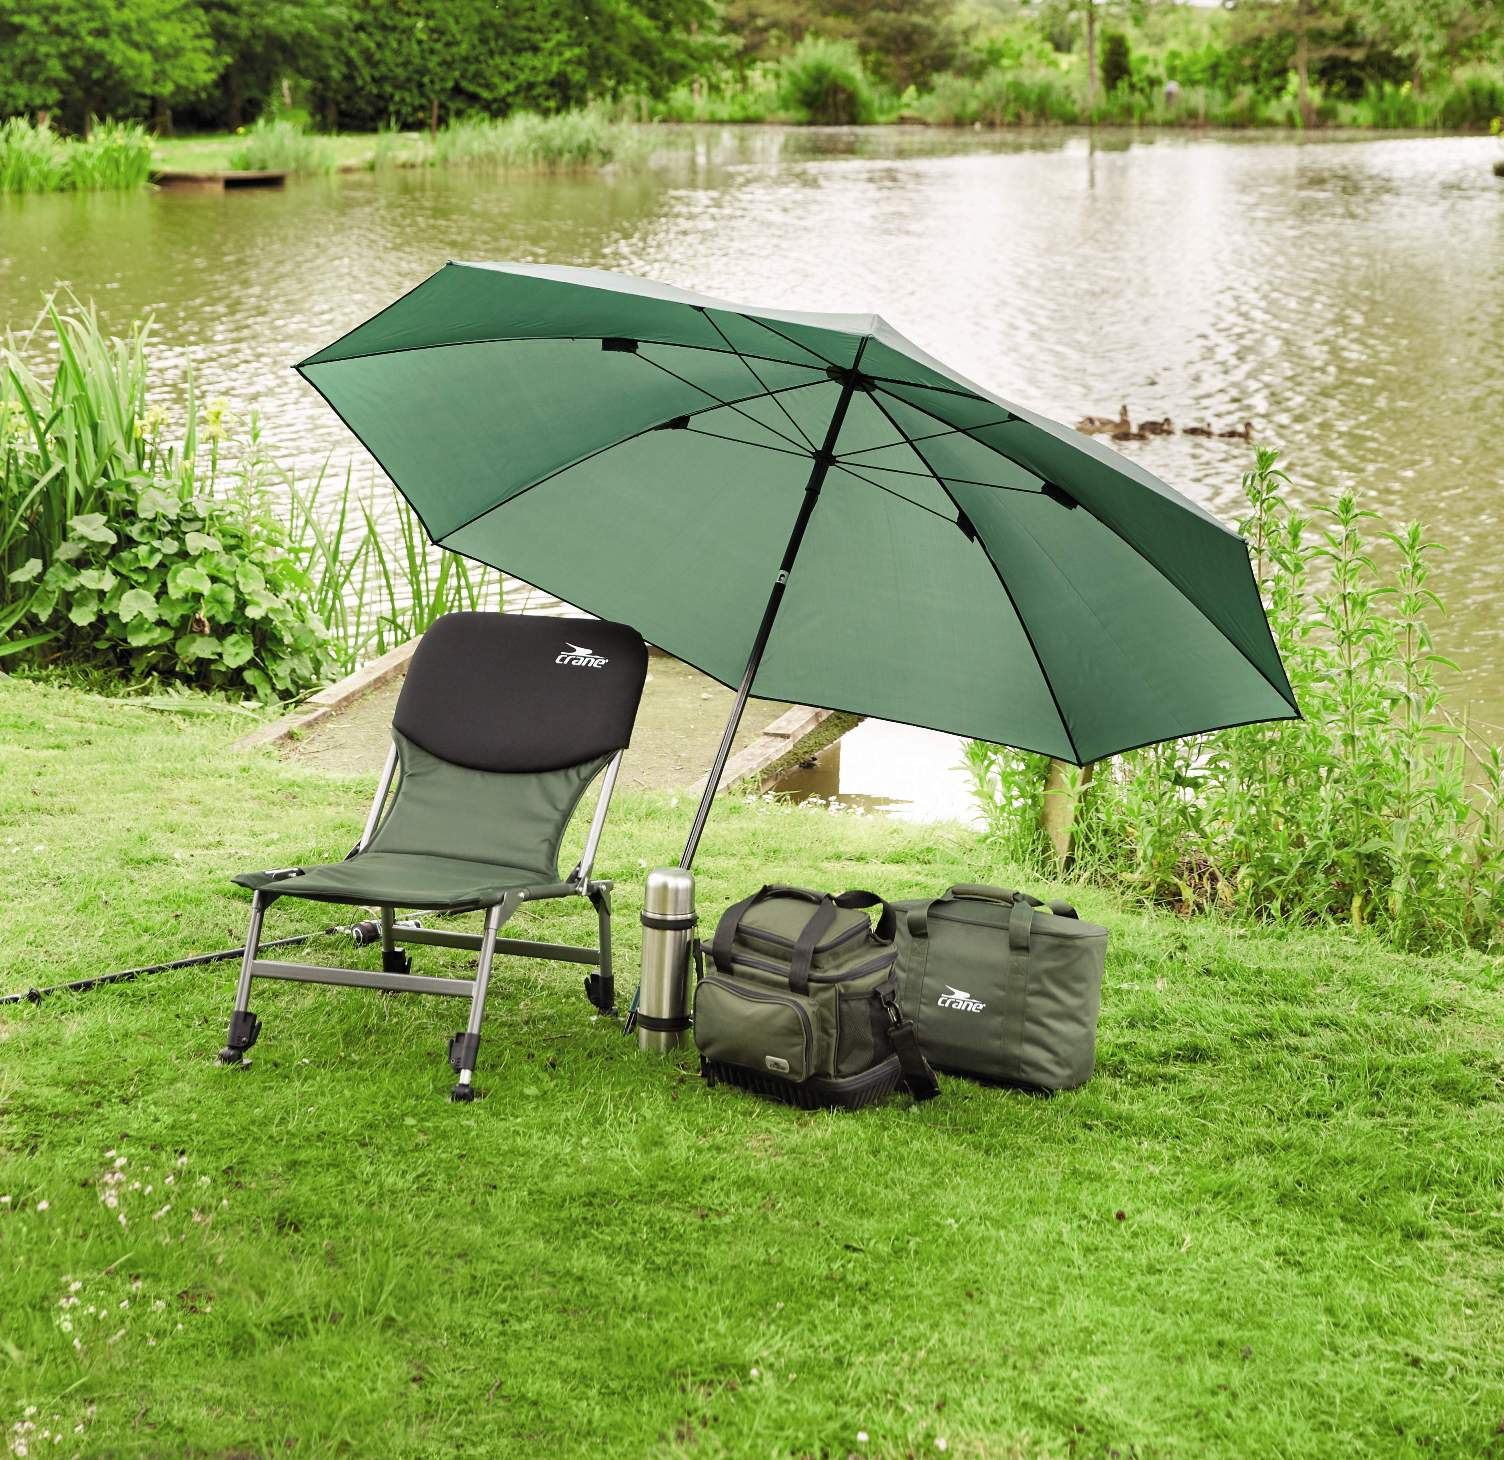 Fishing Chair Crane Wooden Garden Chairs Uk Review Aldi Range The Test Pit